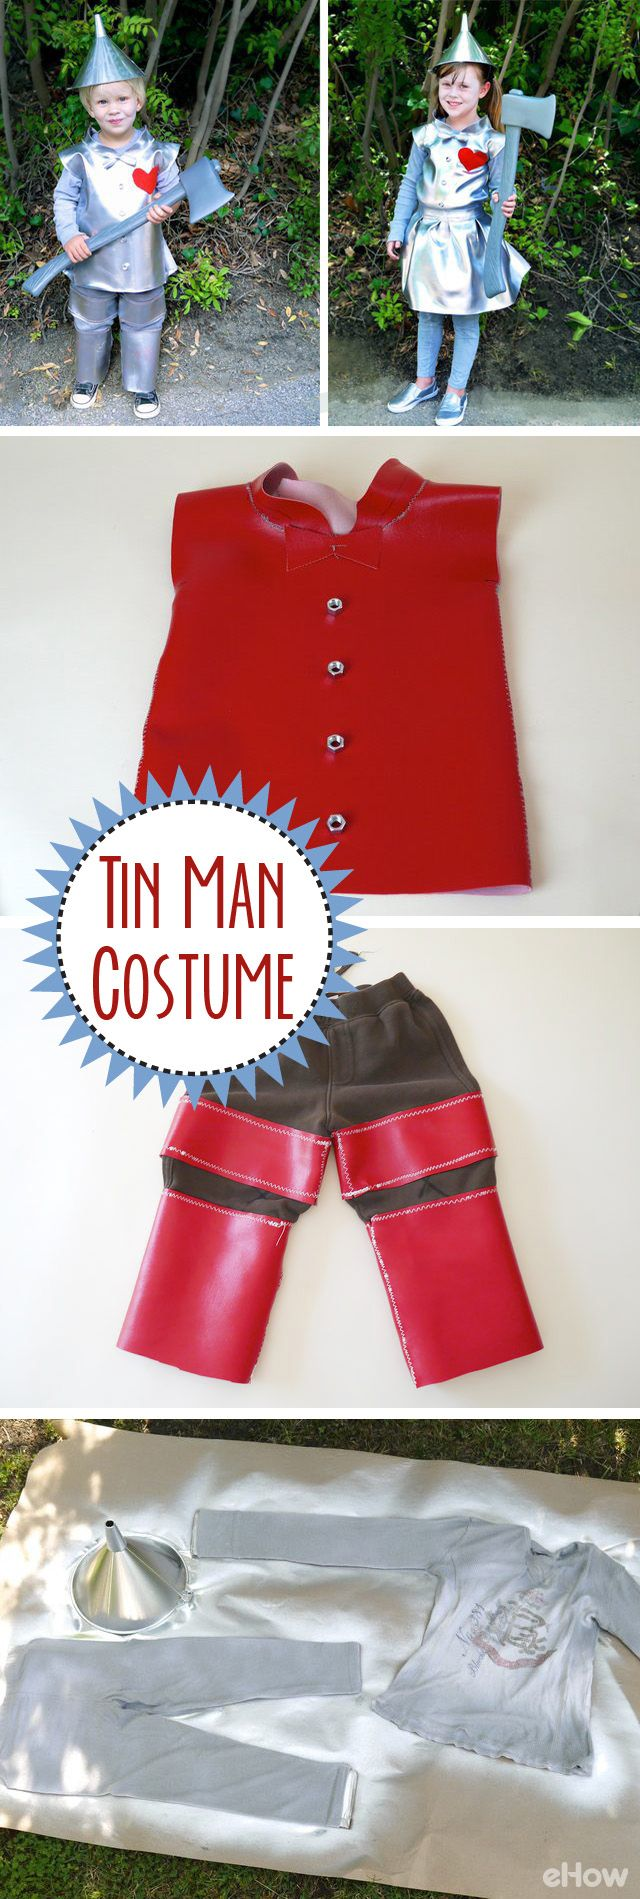 A little Tin Man costume for a girl or boy! Just love how simple this costume is to make. http://www.ehow.com/how_2064531_make-tin-man-costume.html?utm_source=pinterest.com&utm_medium=referral&utm_content=freestyle&utm_campaign=fanpage